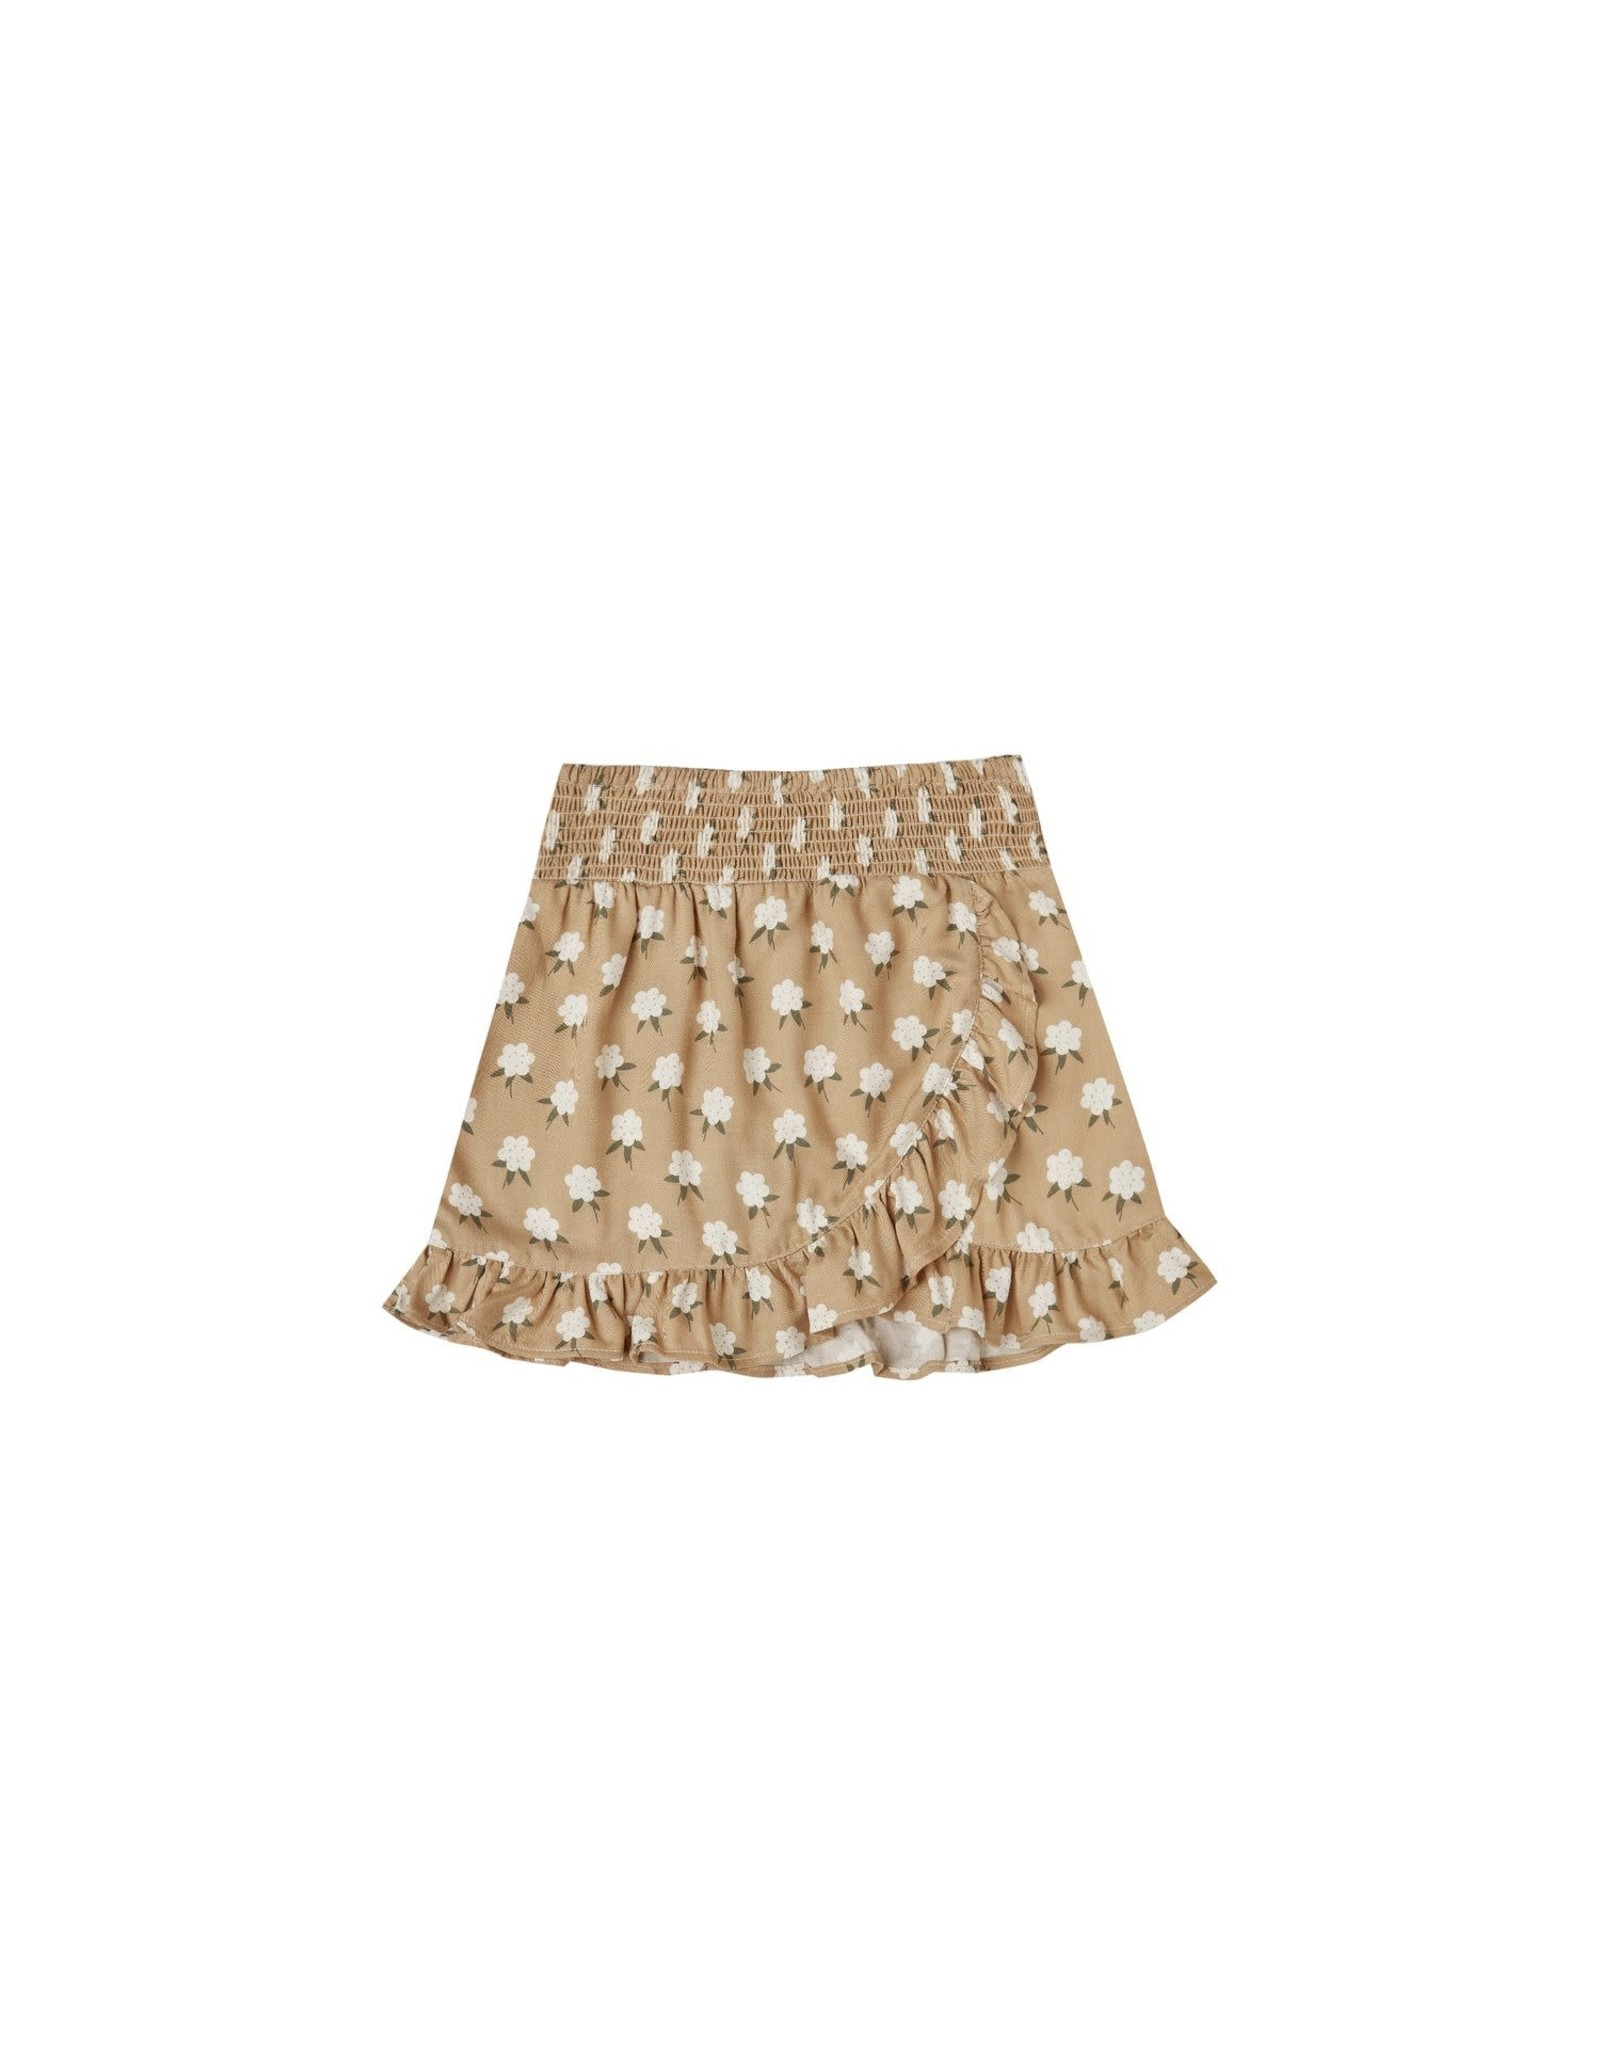 Rylee and Cru white flora wrap skirt